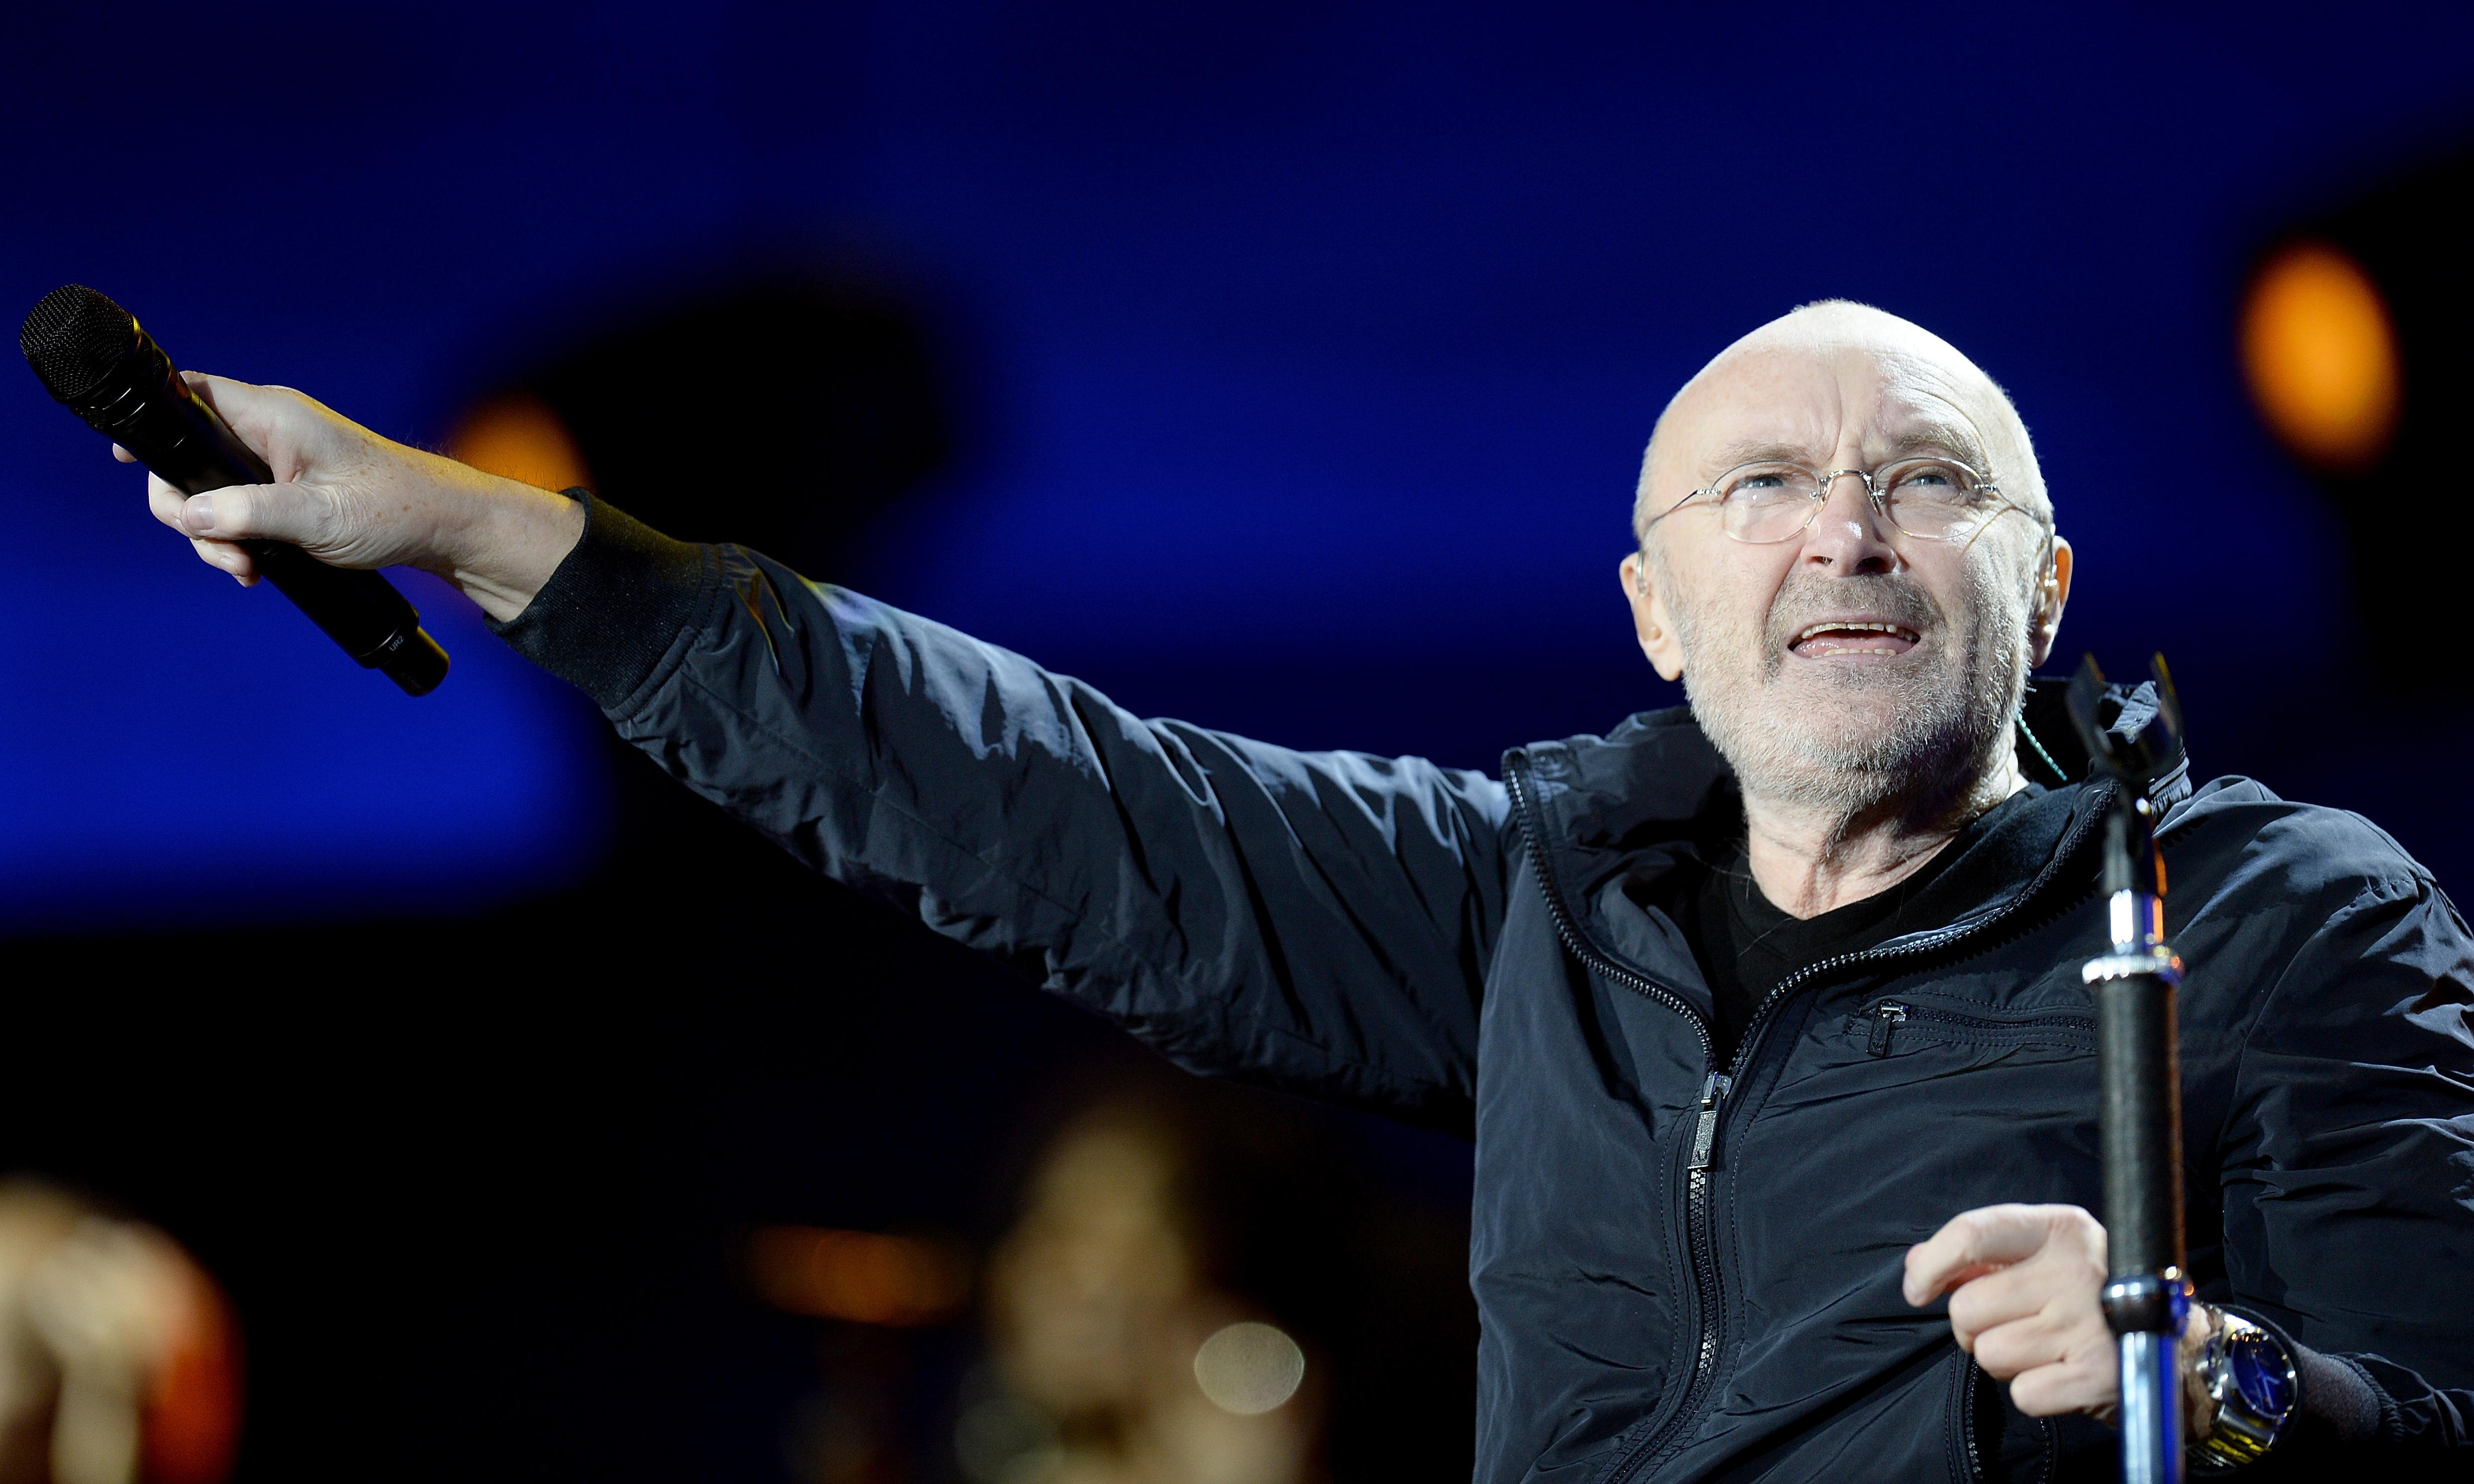 In defence of Phil Collins: what is the genesis of all the hatred?